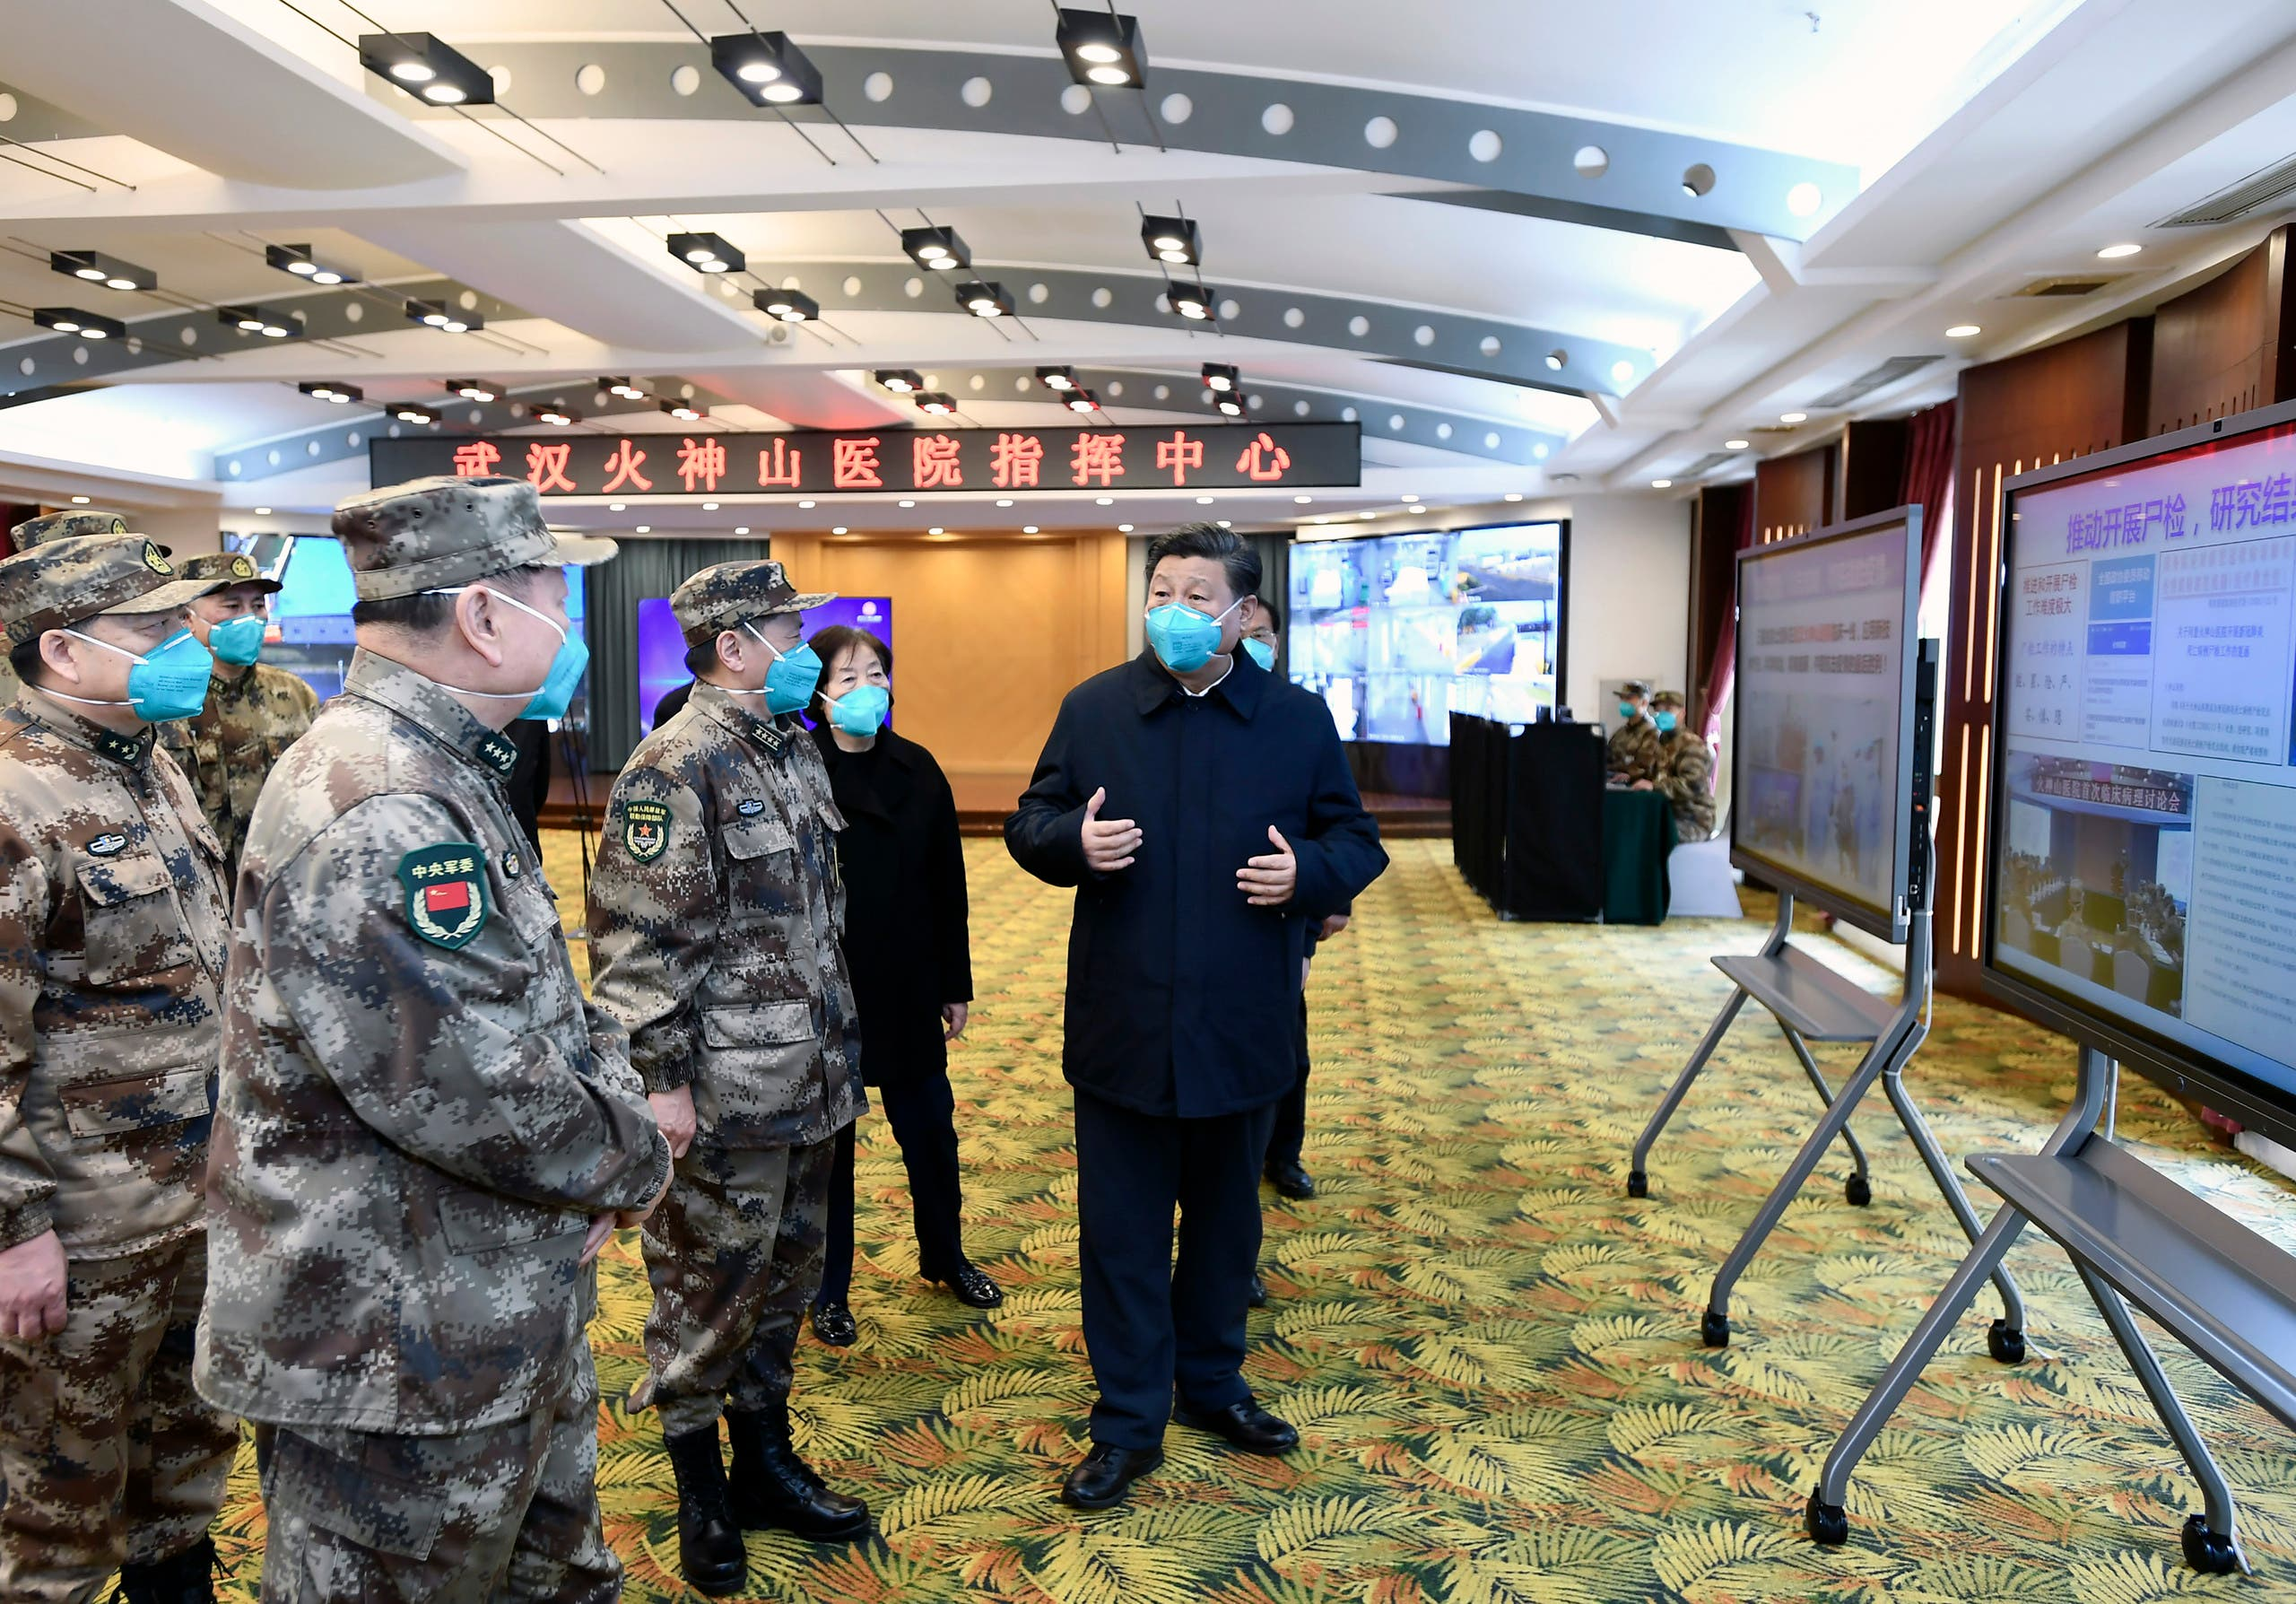 Chinese President Xi Jinping, right, is briefed about the Huoshenshan Hospital in Wuhan in central China's Hubei Province, on Tuesday, March 10, 2020. (AFP)